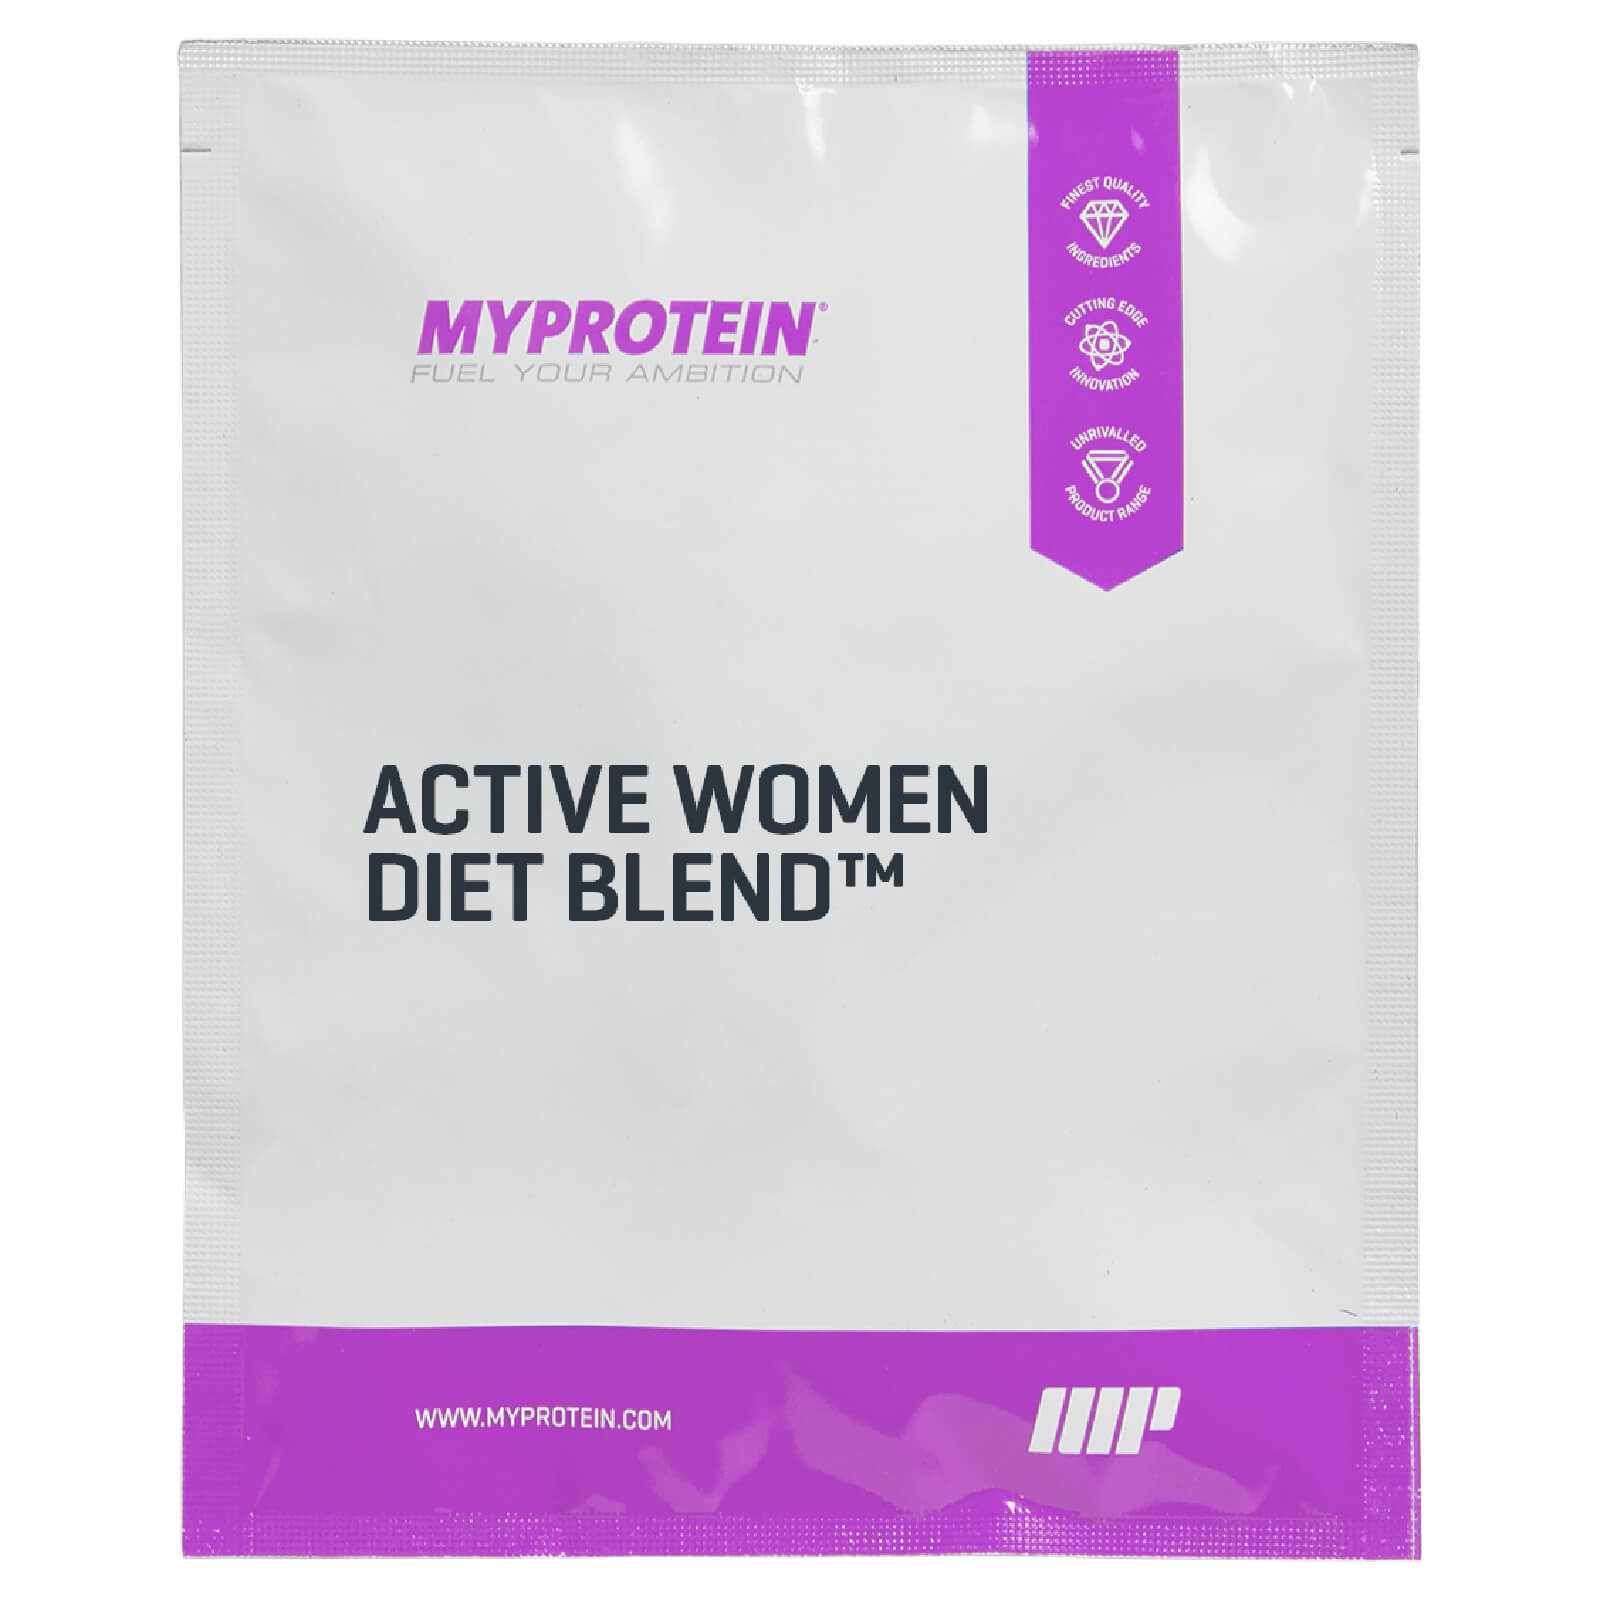 Active Woman Diet Blend (Sample) - Chocolate Fudge Brownie - 25g